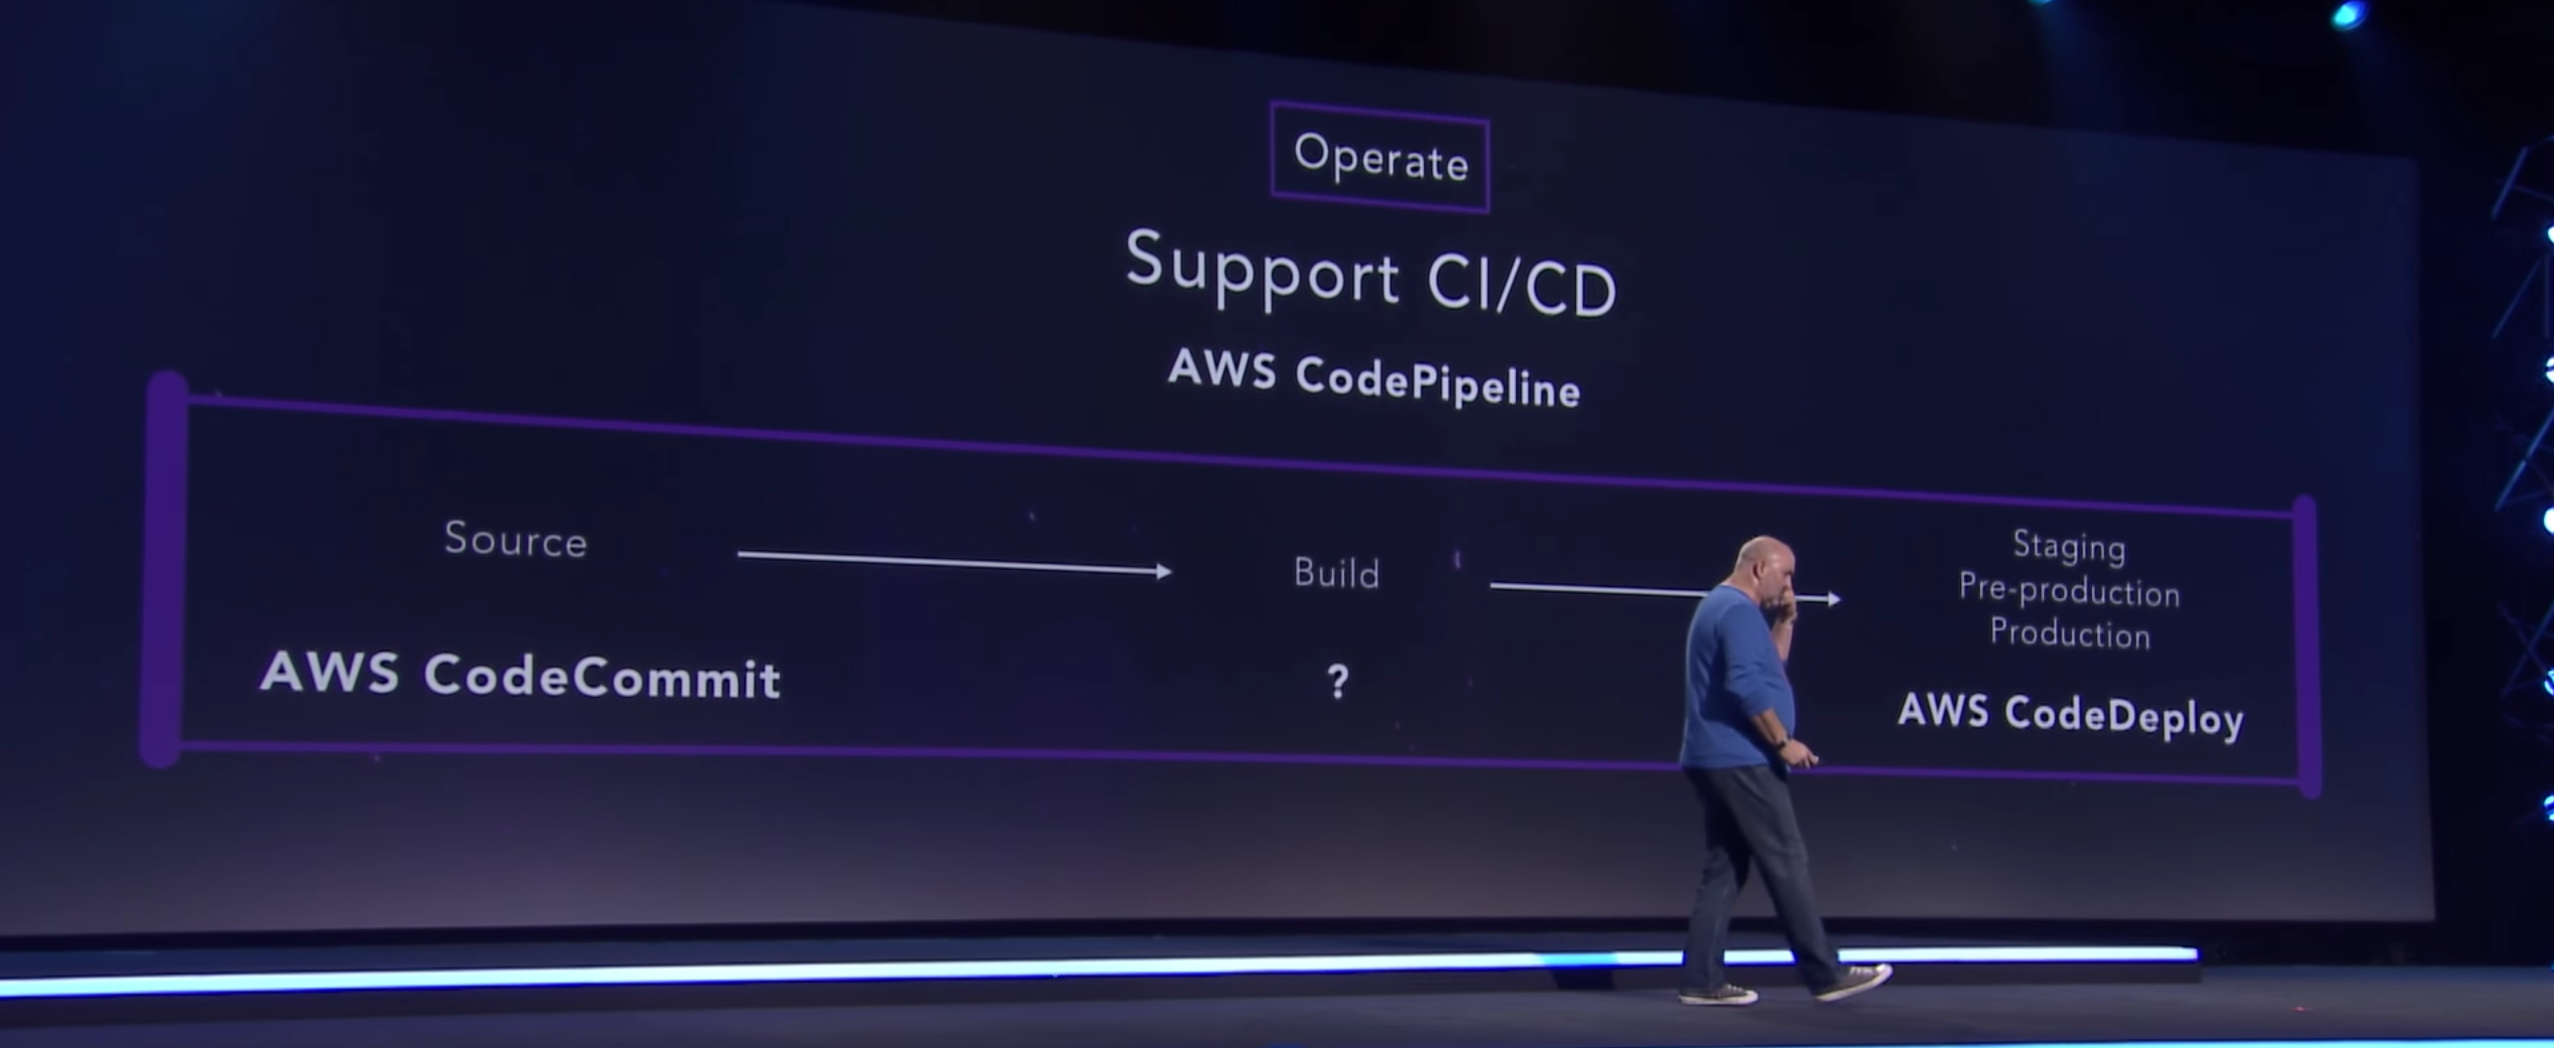 [Werner Vogels re:Invent 2016 Keynote](https://www.youtube.com/watch?v=ZDScBNahsL4&t=34m48s) — Code Build Announcement